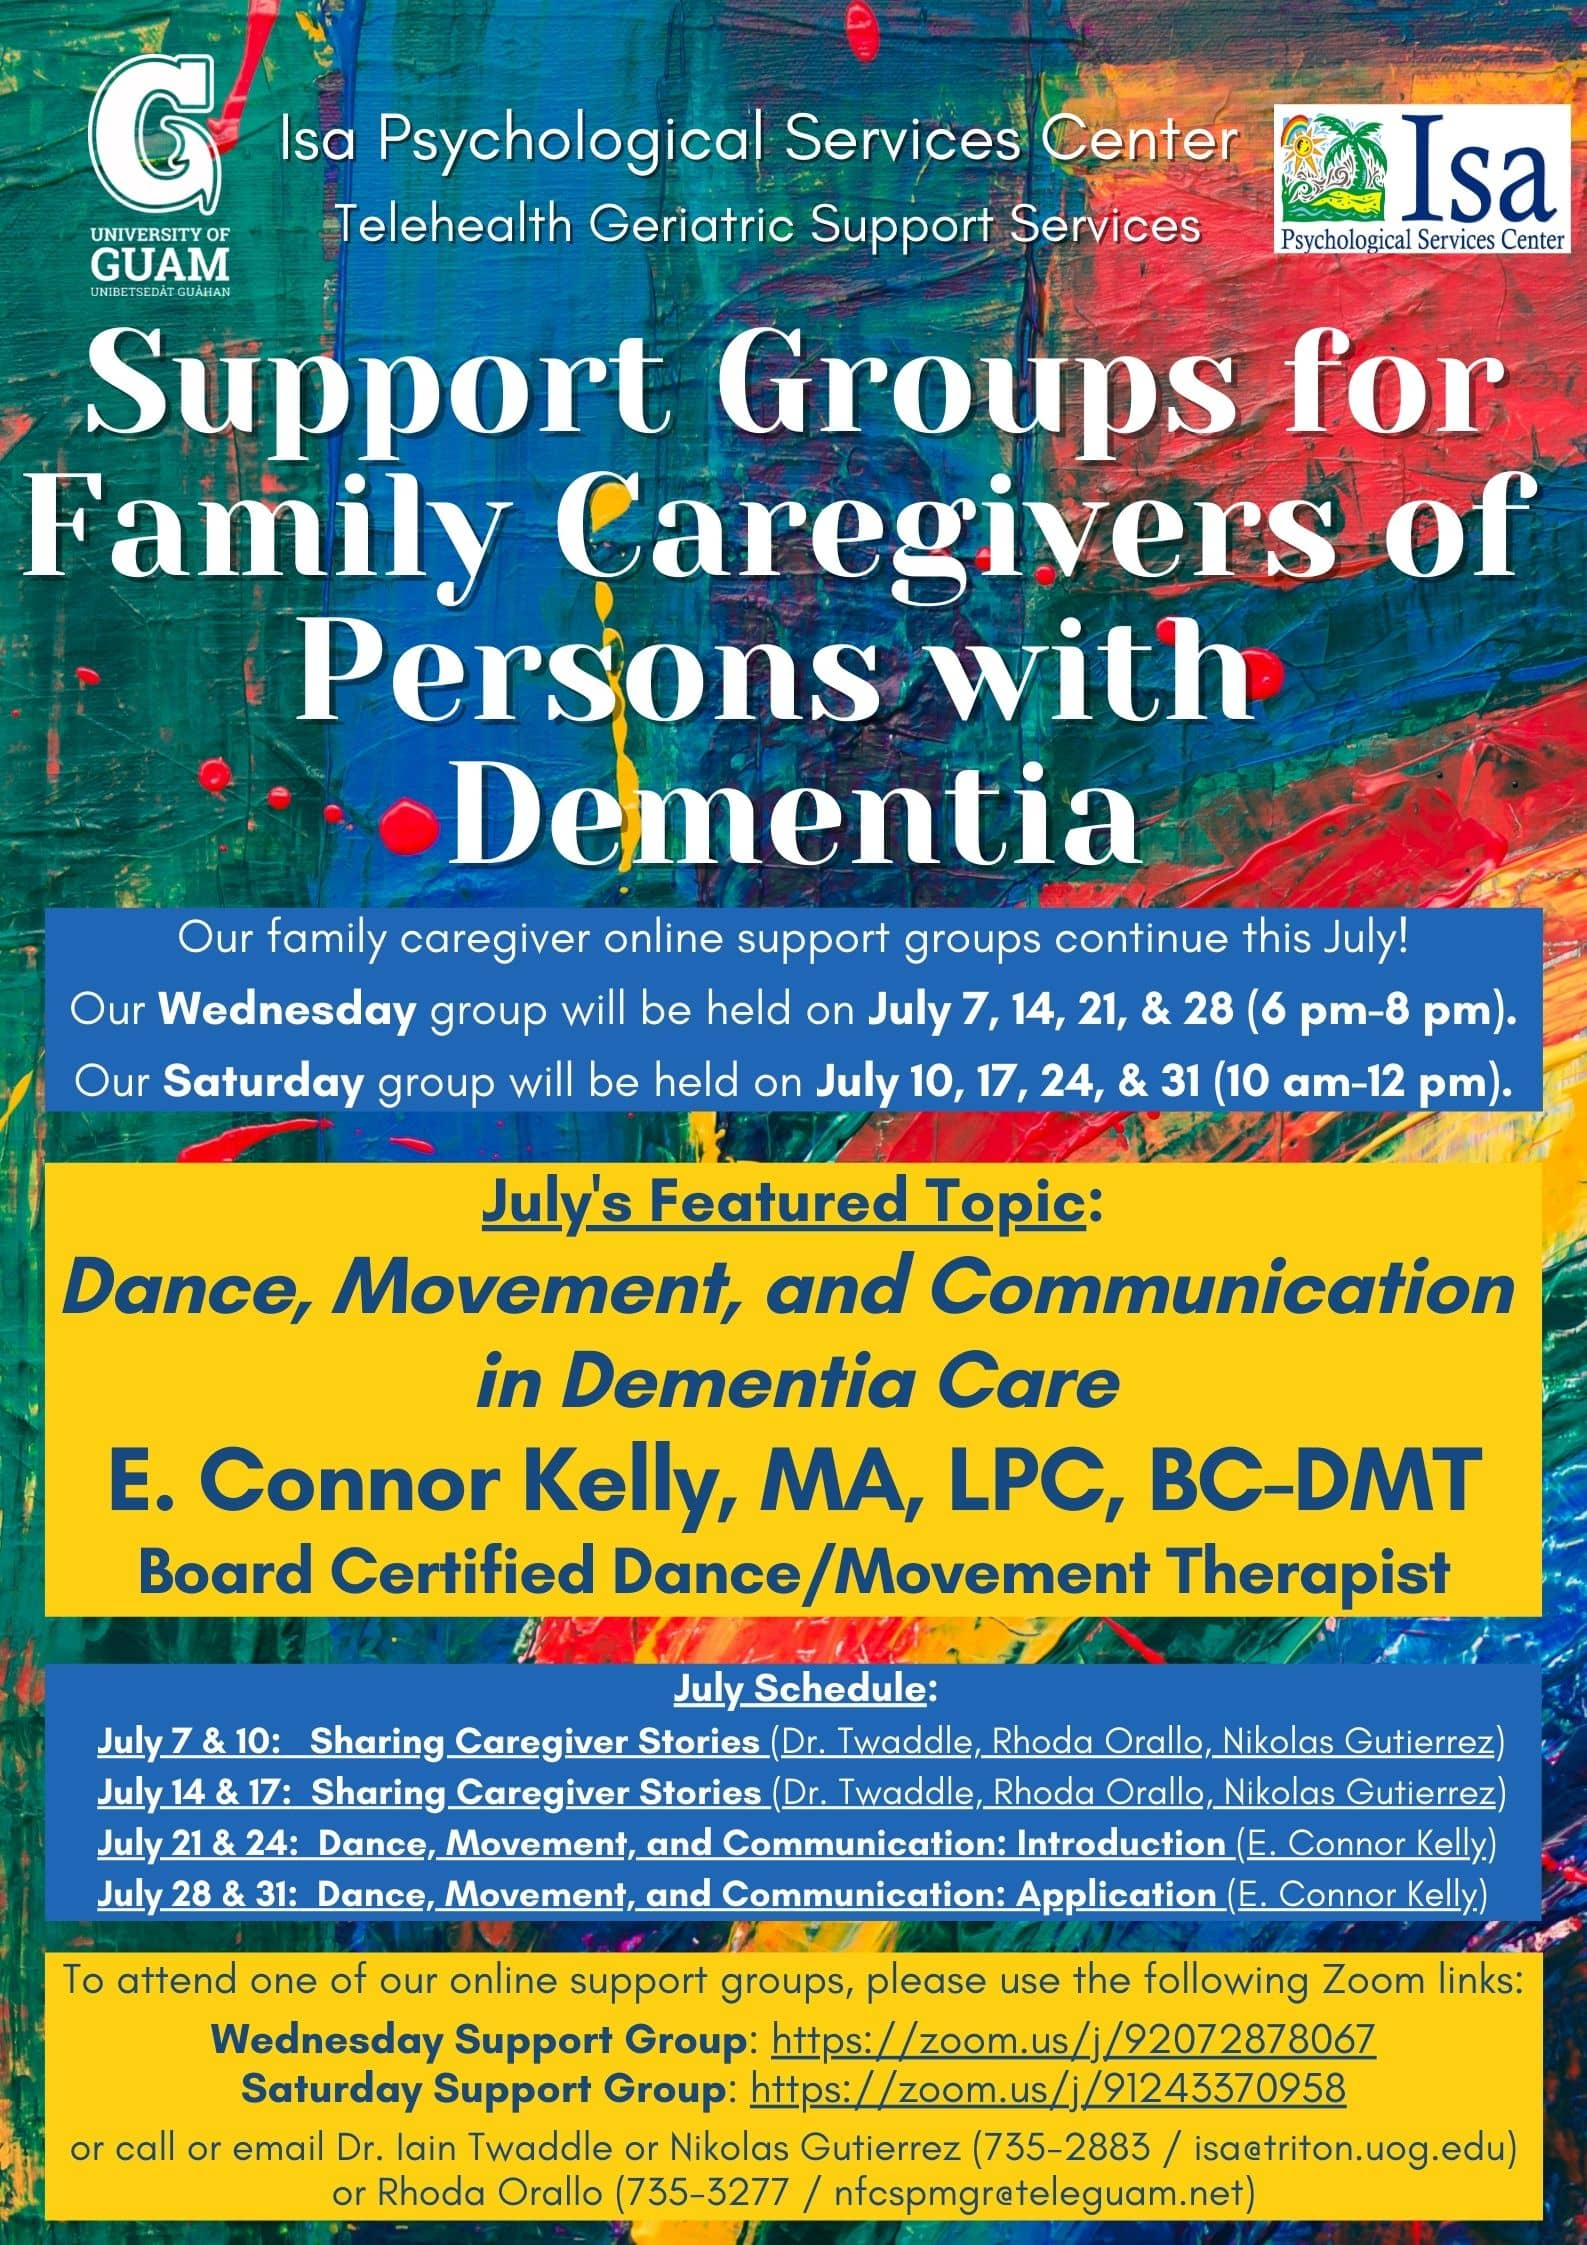 Dance, Movement, and Communication in Dementia Care